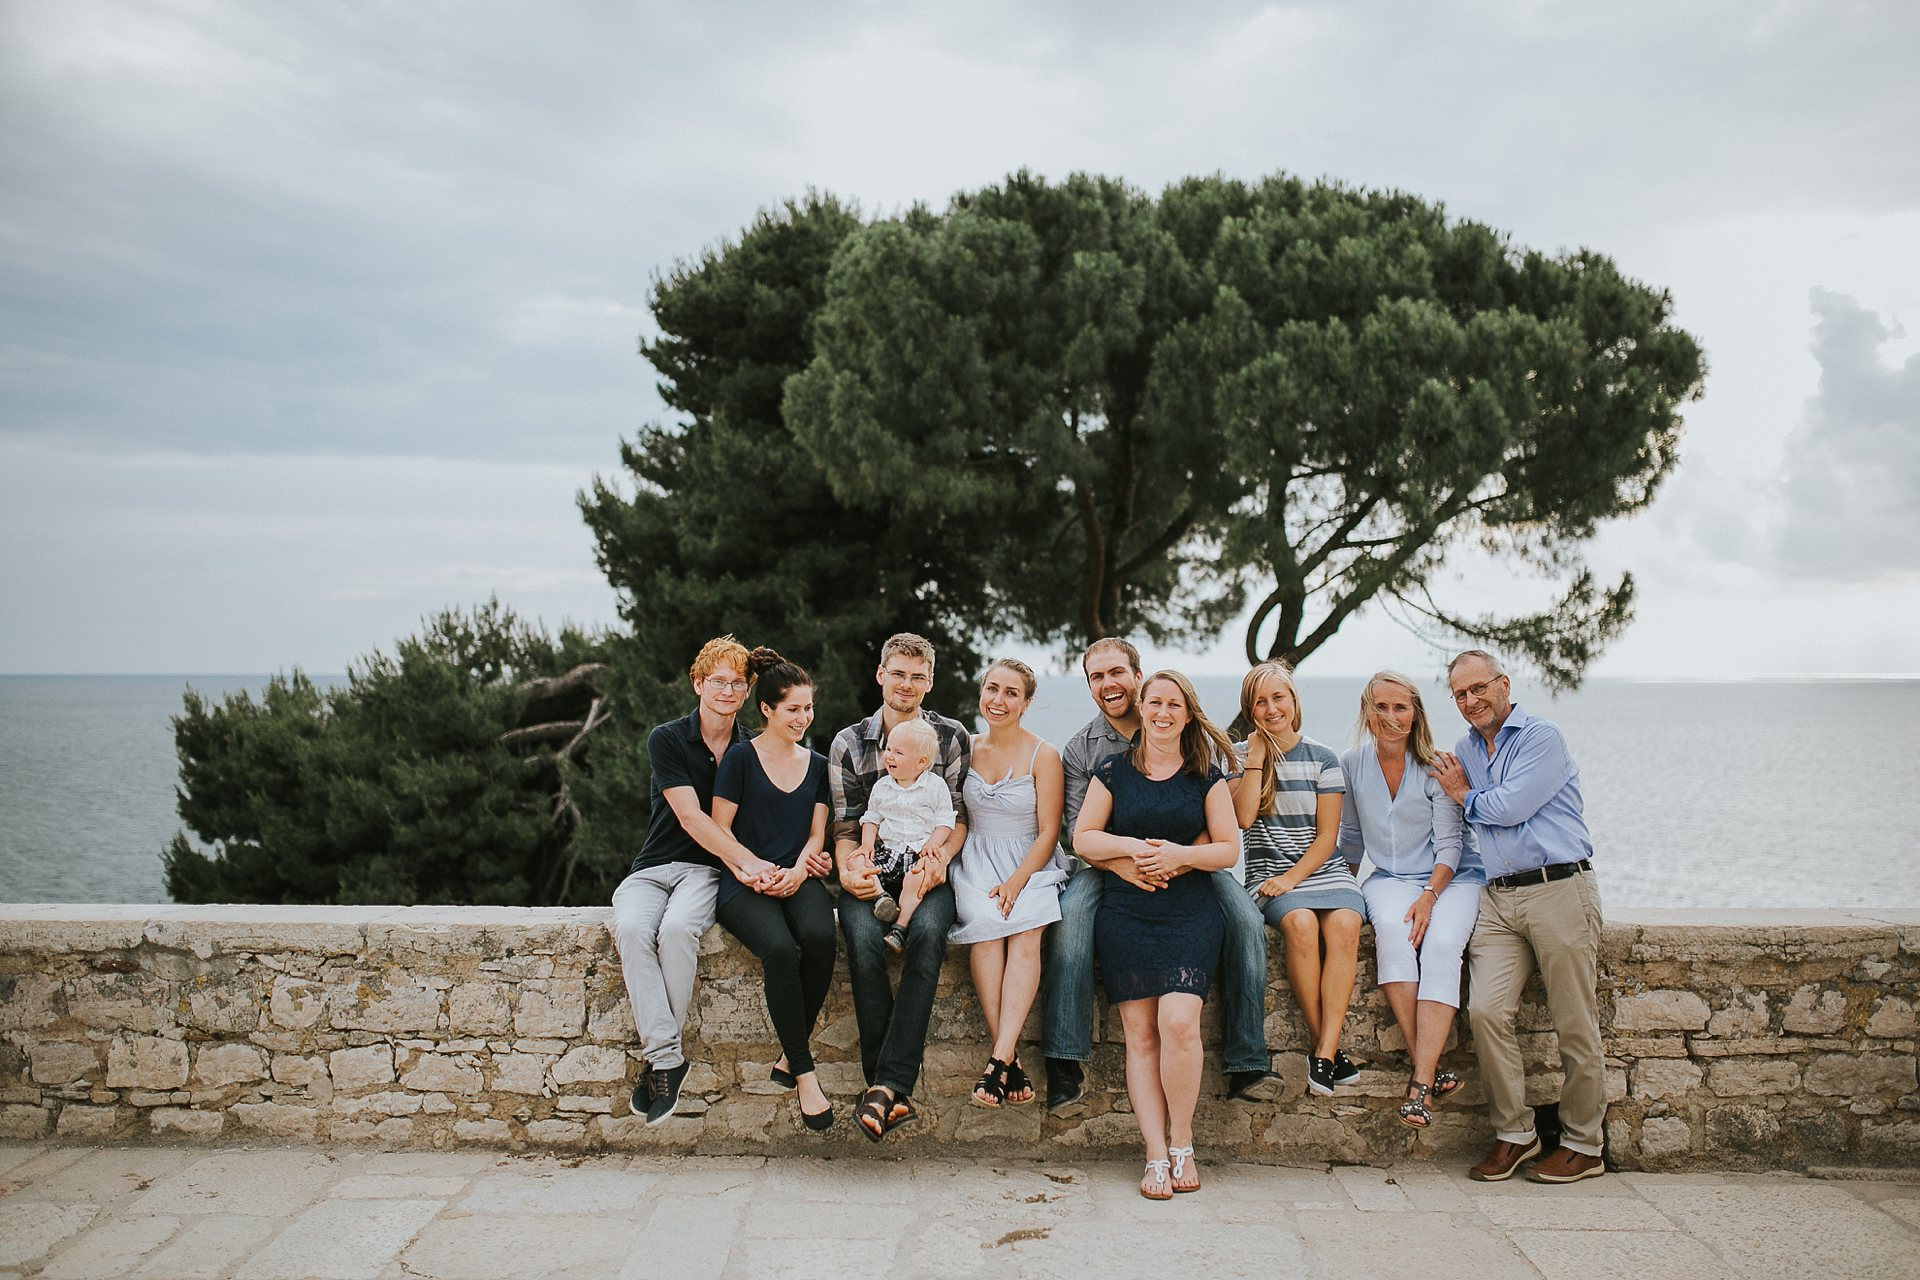 Dalibora_Bijelic_Croatia_Istria_family_vacation_photographer_0012.jpg